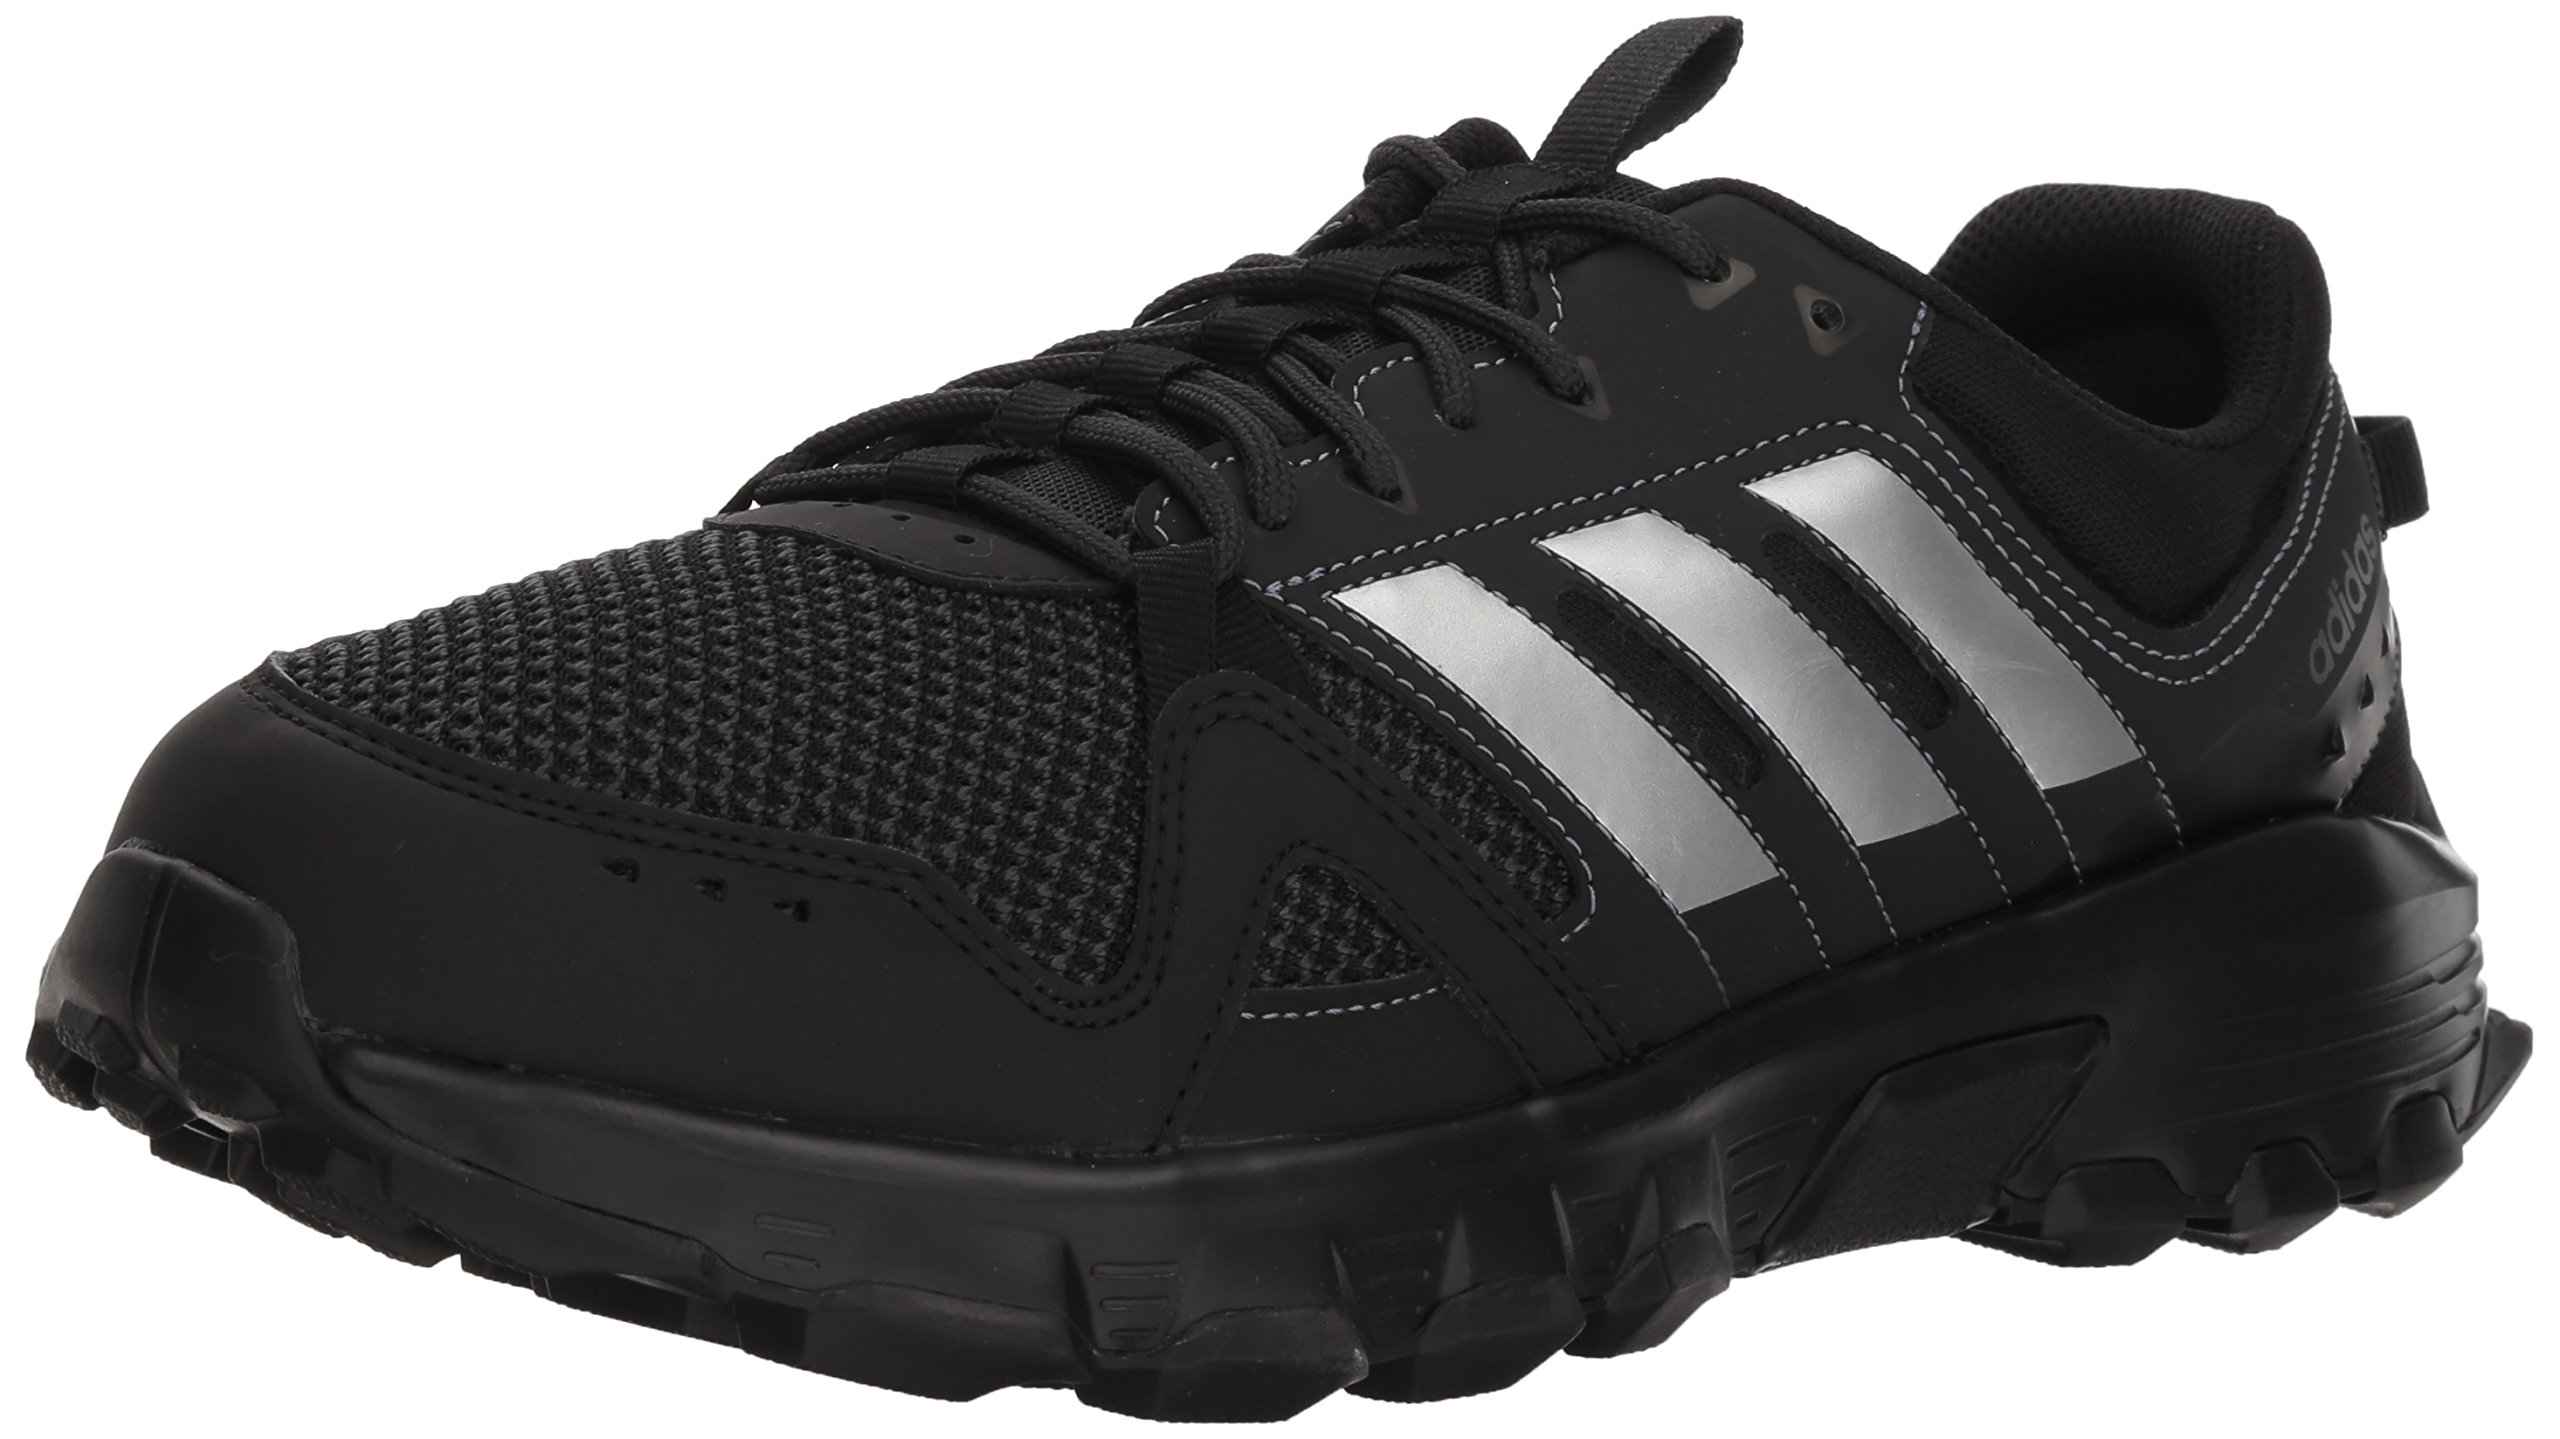 adidas Performance Men's Rockadia Trail m, Core Black/Matte Silver/Carbon, 10.5 Wide US by adidas